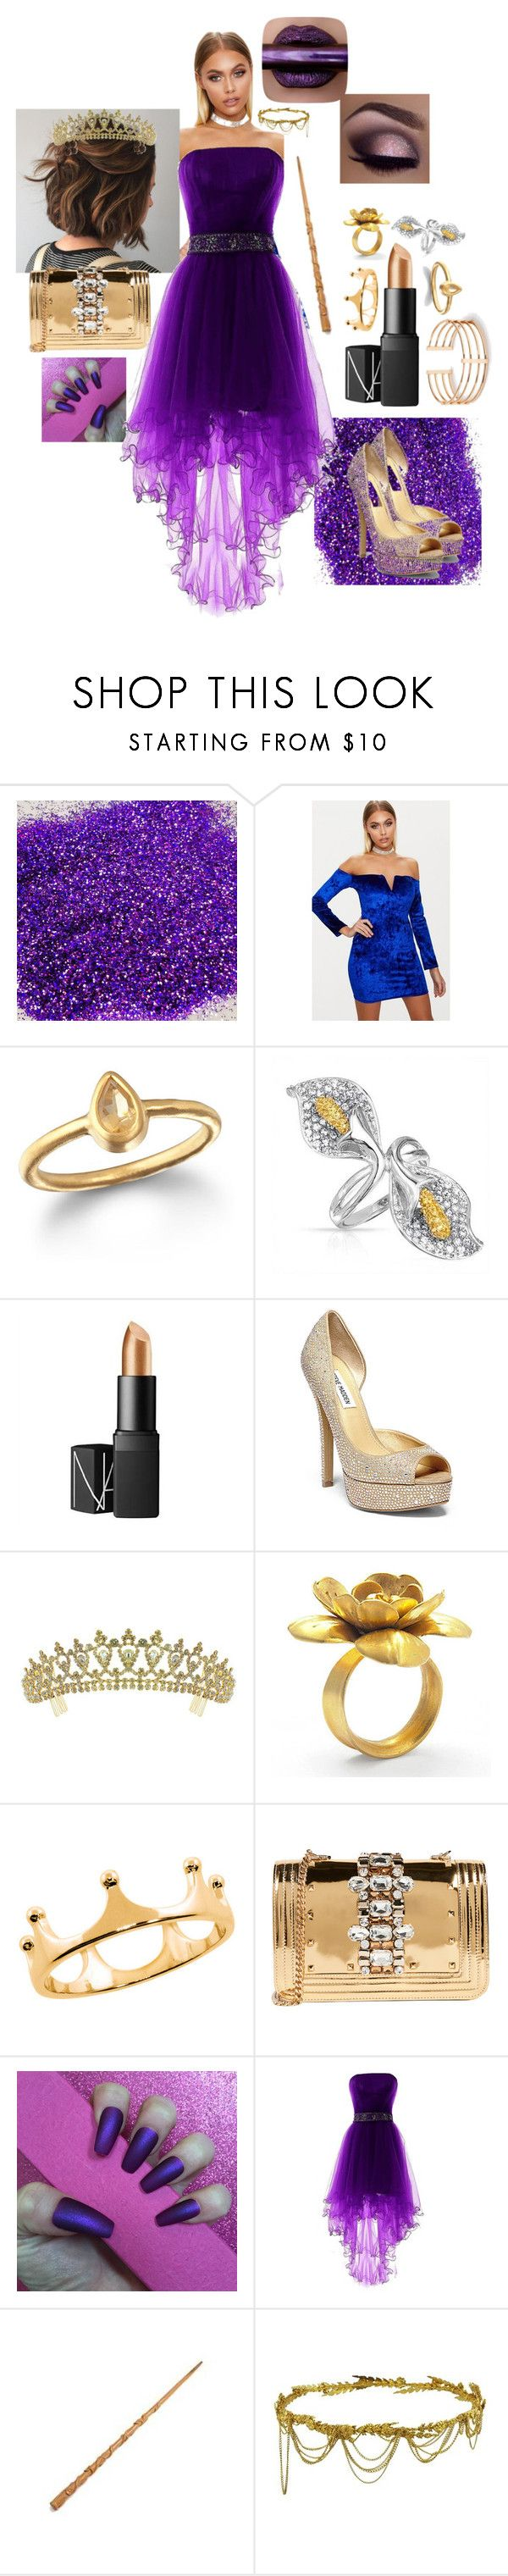 """""""Louisa's Yule Ball"""" by fictionaljevem on Polyvore featuring Satya, Bling Jewelry, NARS Cosmetics, Steve Madden, Kate Marie, Eternally Haute, GEDEBE and Jennifer Behr"""